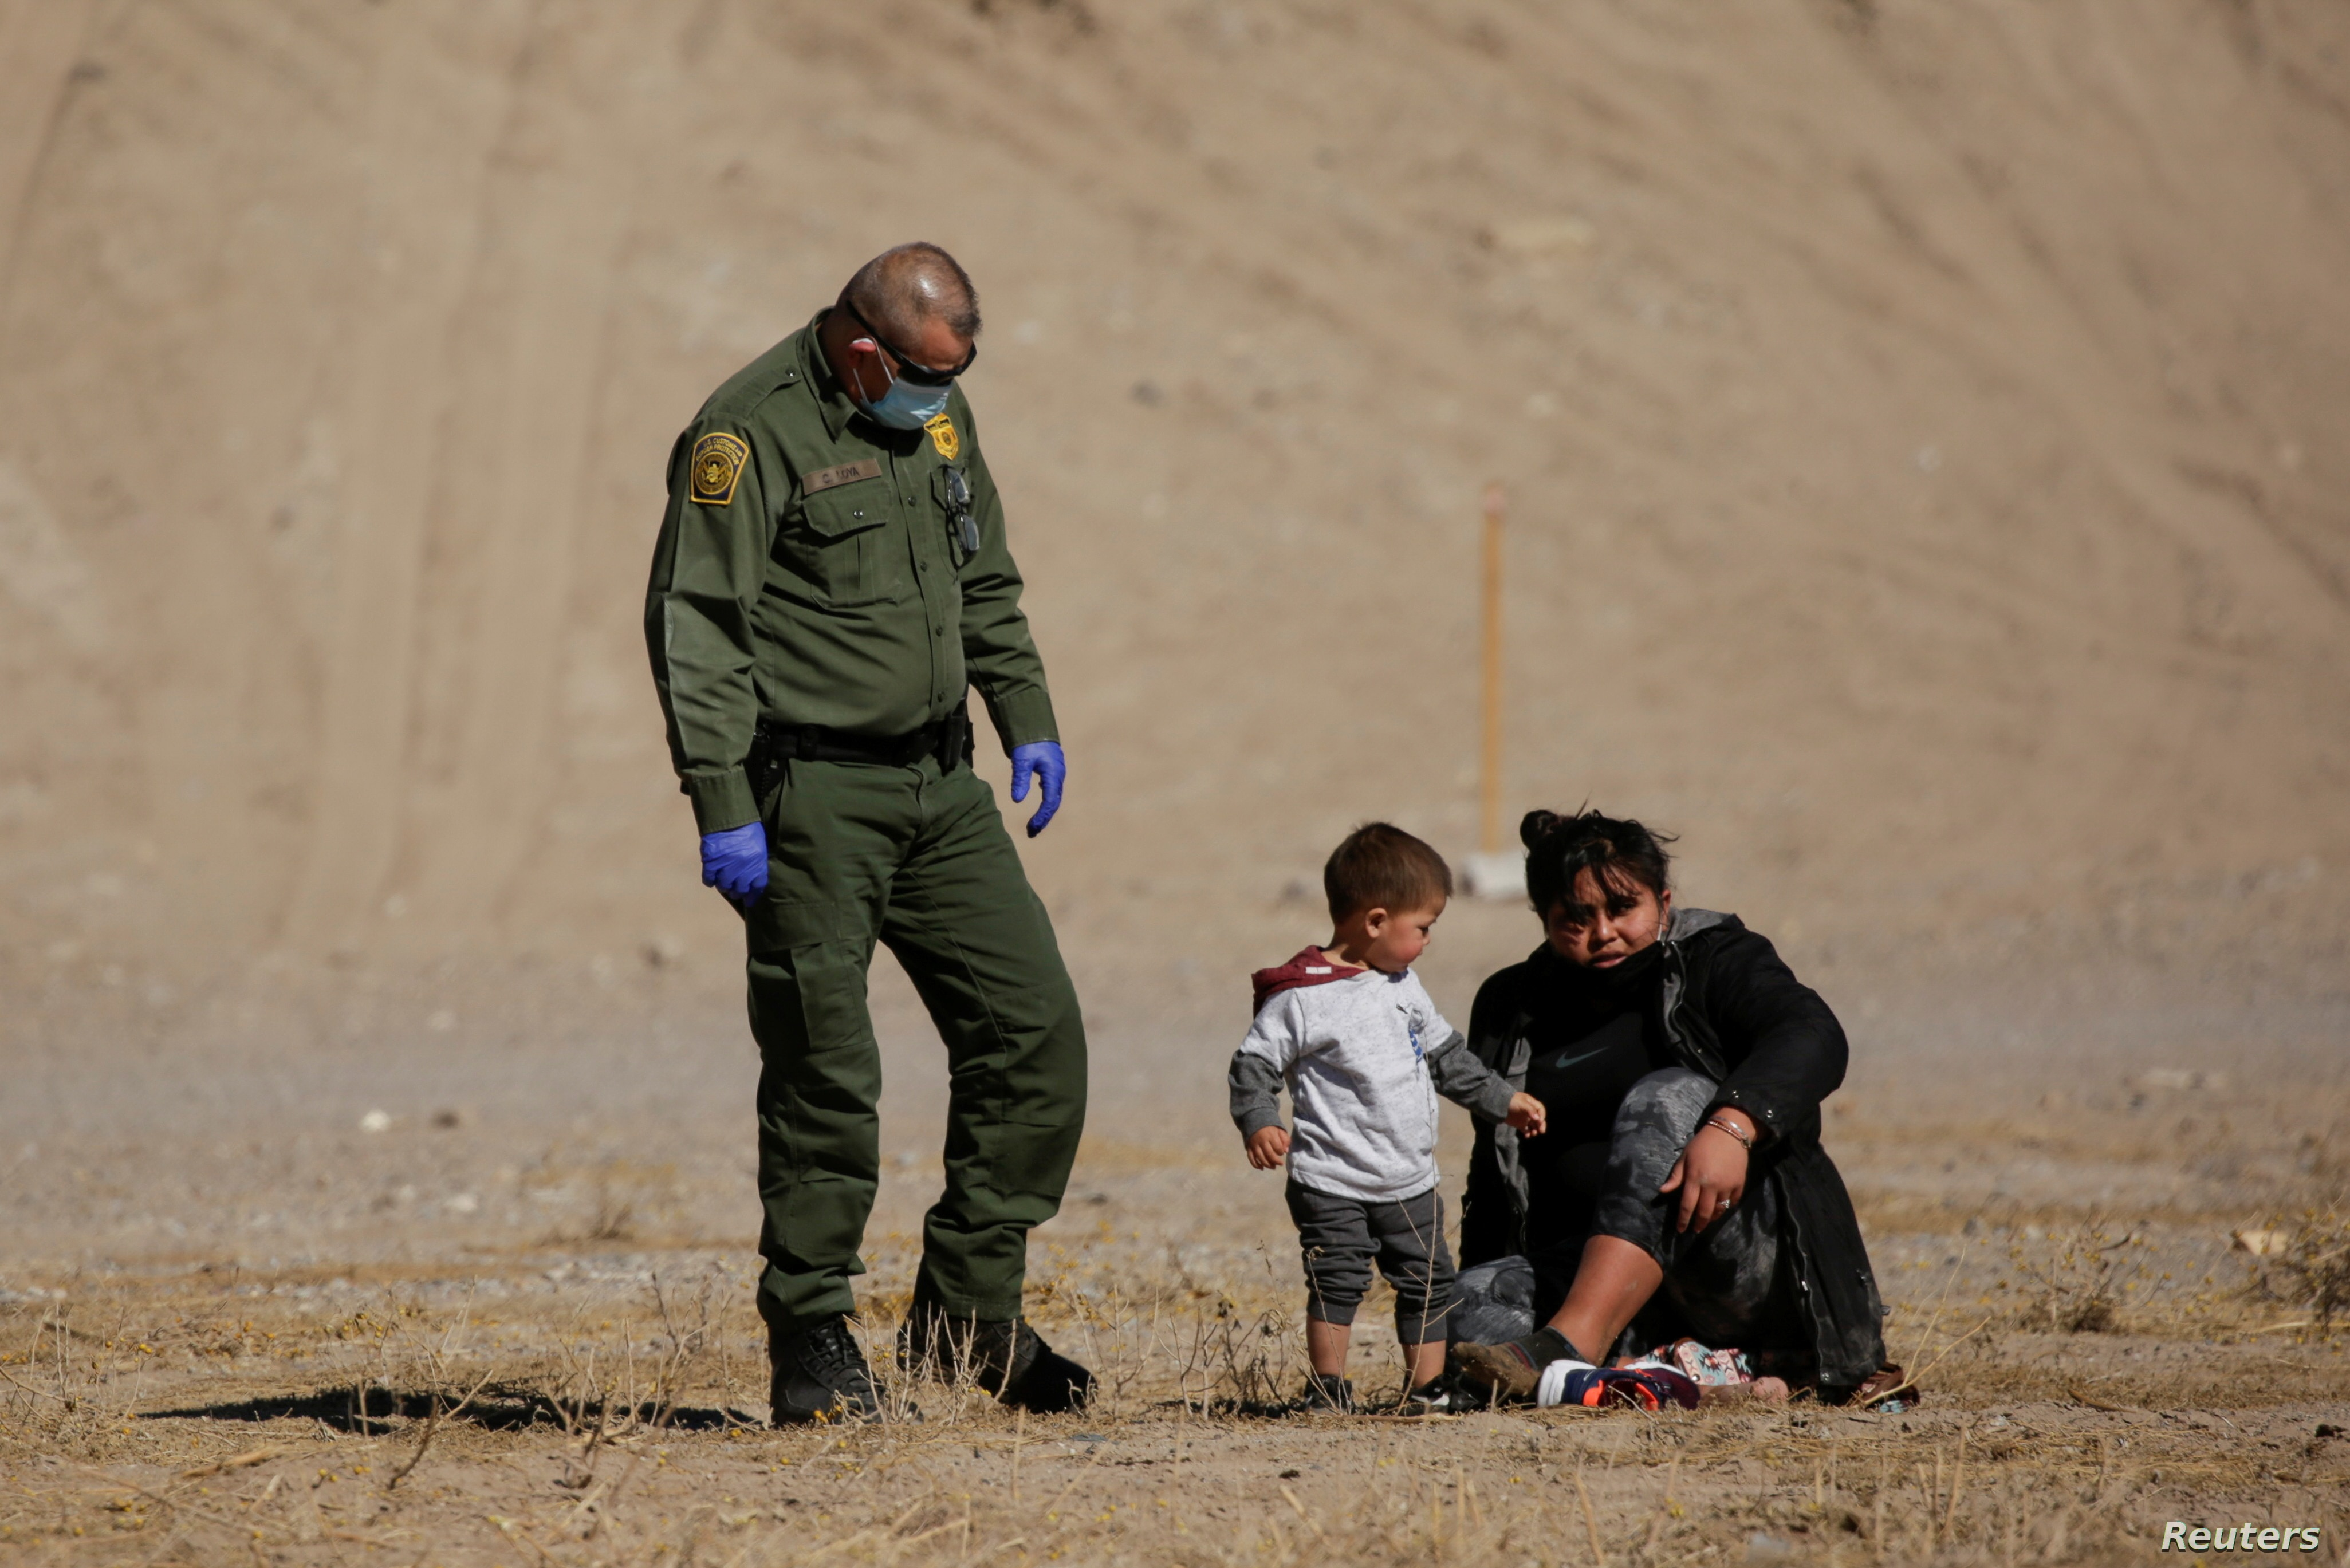 A migrant puts on her shoes after crossing the Rio Bravo river to turn herself in to a U.S. Border Patrol agent to request for